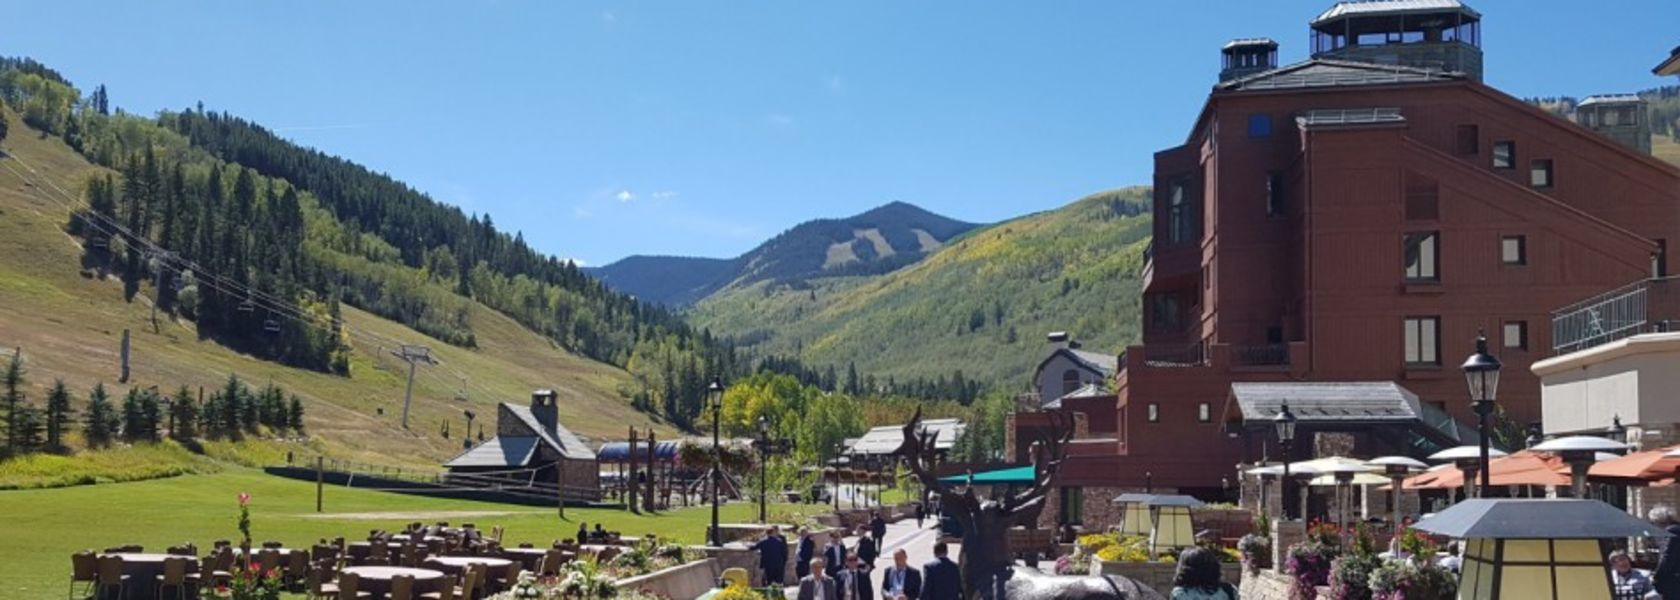 Beaver Creek takeaways